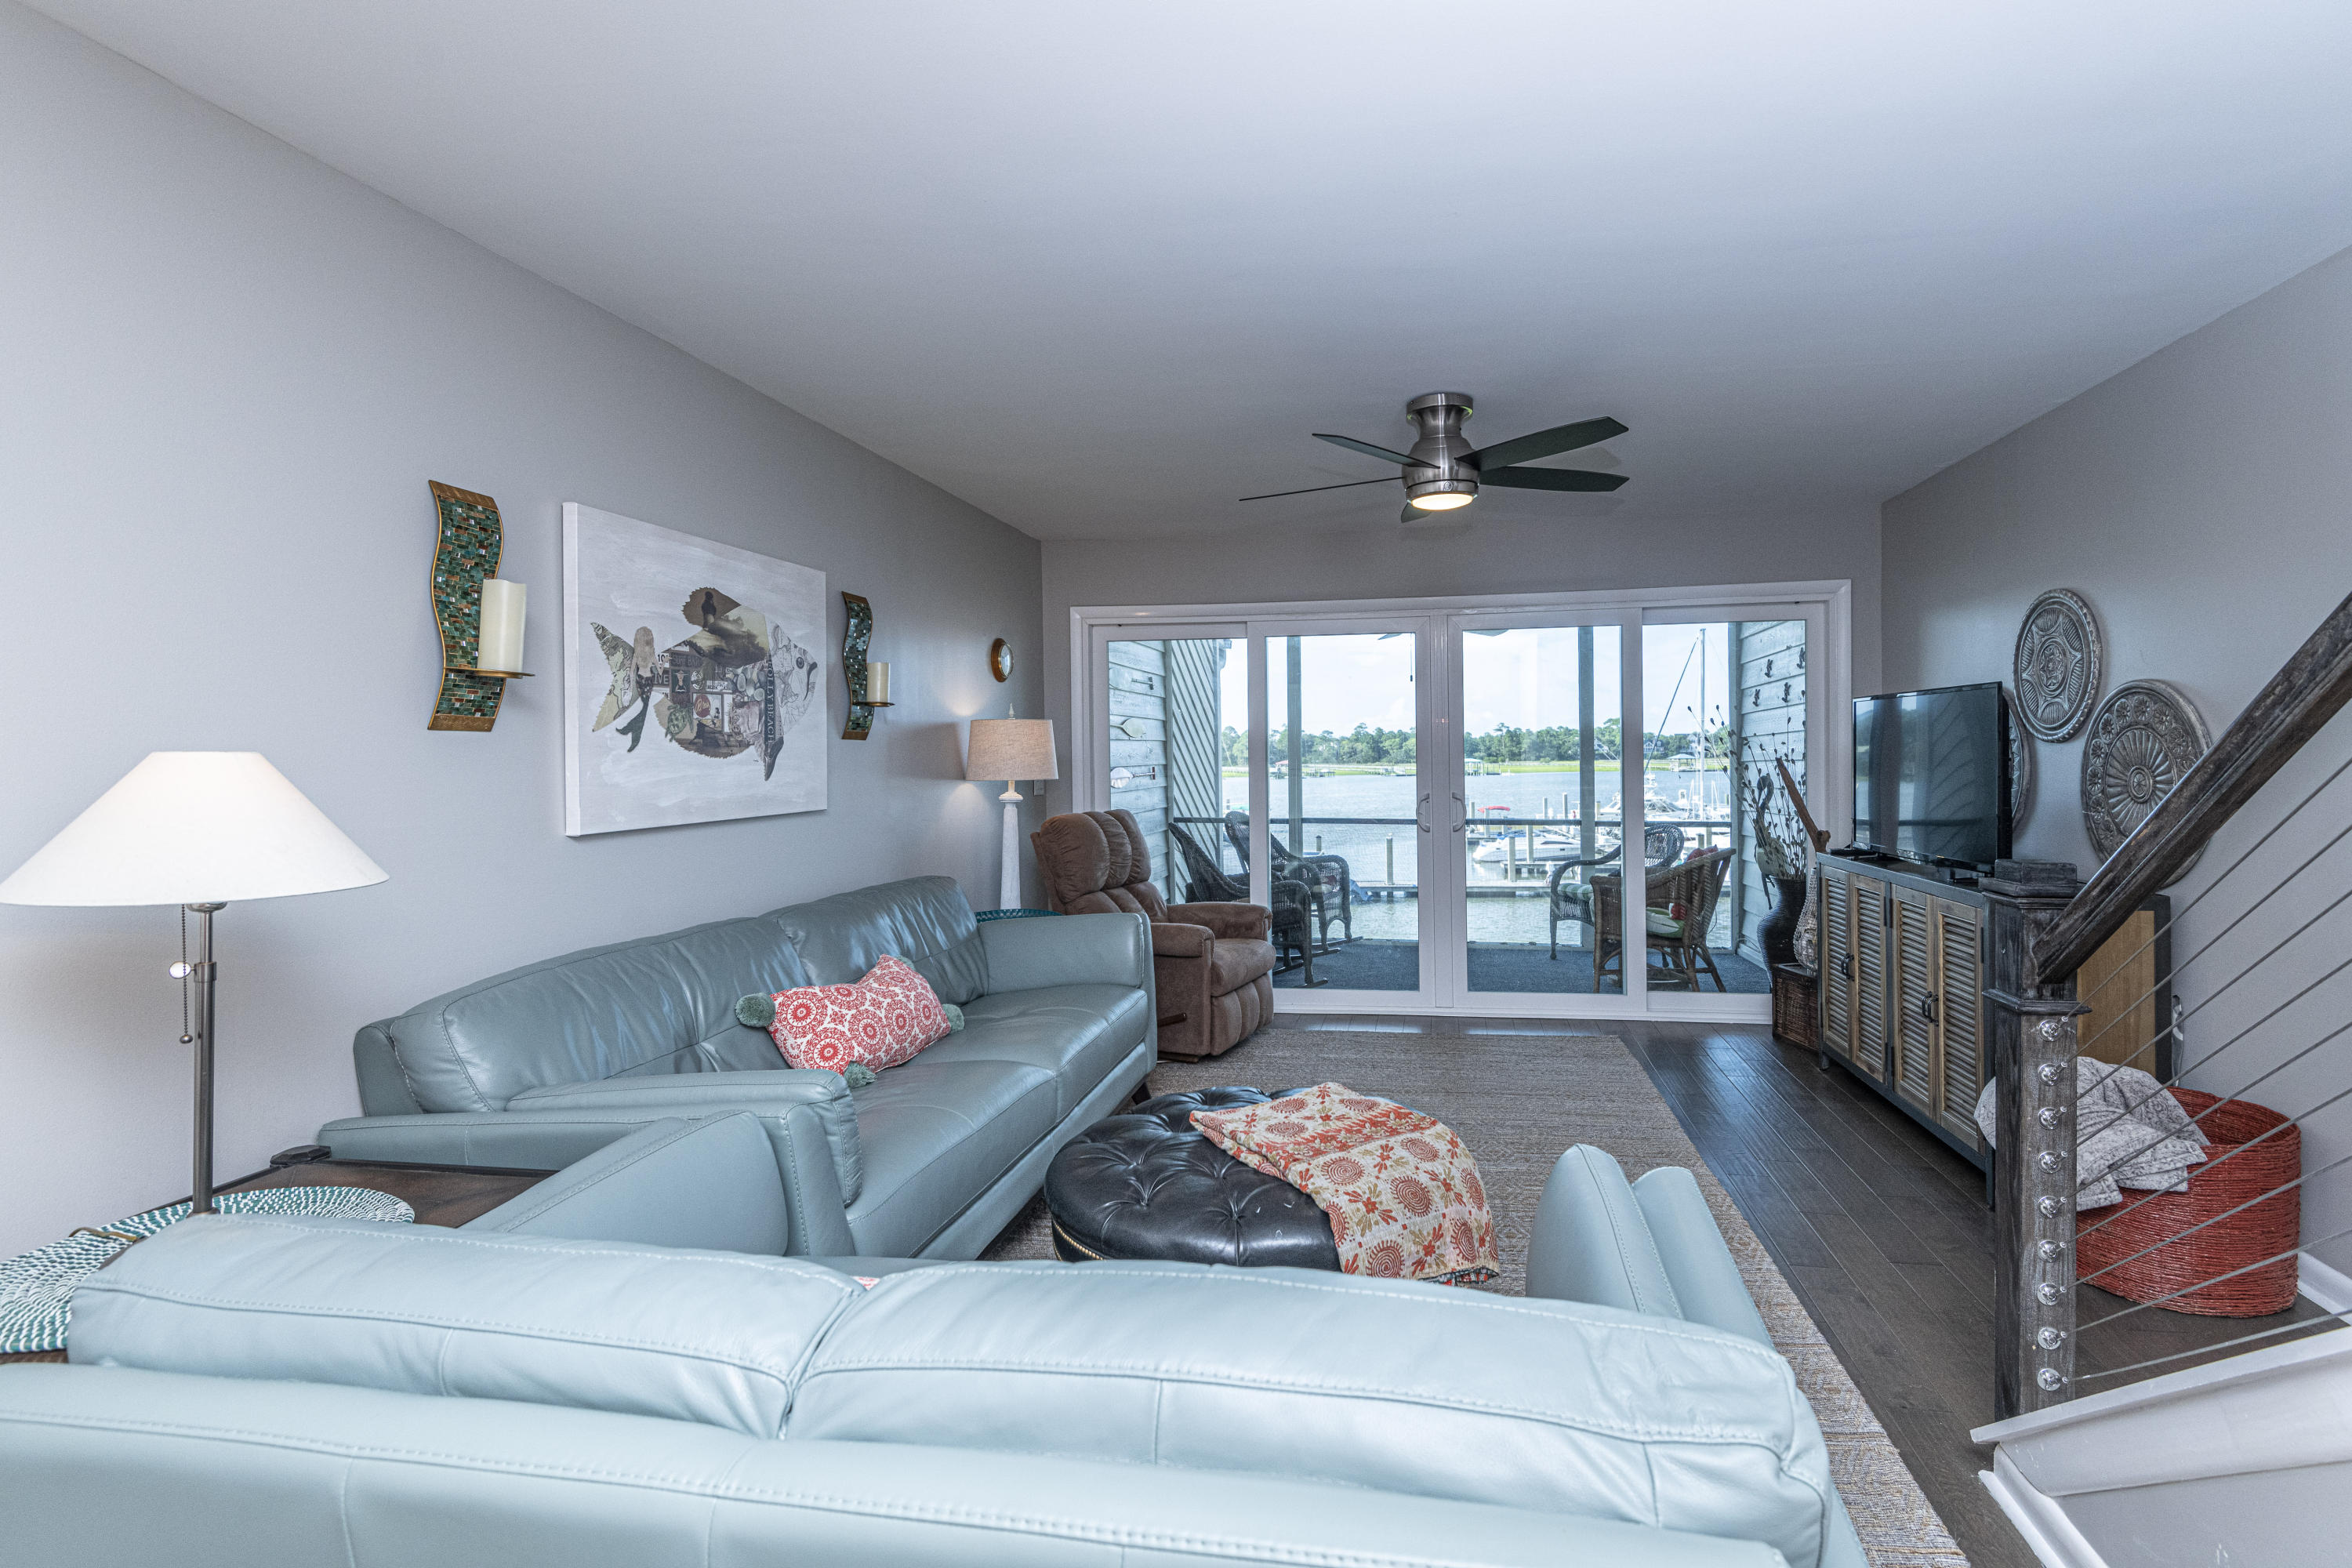 Mariners Cay Homes For Sale - 71 Mariners Cay, Folly Beach, SC - 14